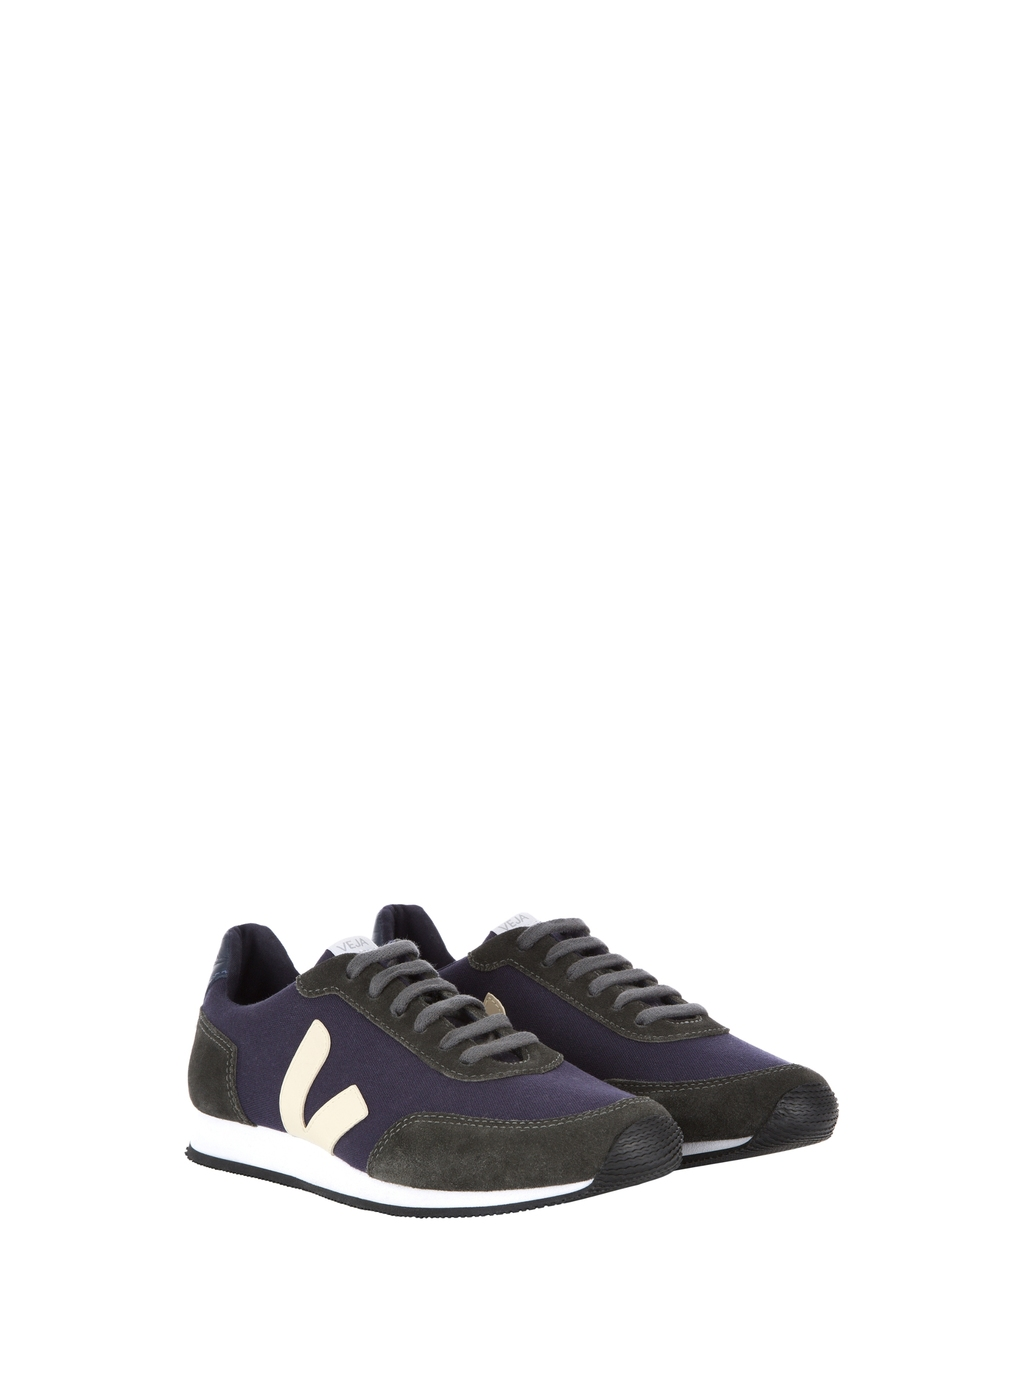 Womenswear Veja Arcade Trainer - predominant colour: navy; secondary colour: black; occasions: casual; material: faux leather; heel height: flat; toe: round toe; style: trainers; finish: plain; pattern: colourblock; shoe detail: moulded soul; season: a/w 2015; wardrobe: highlight